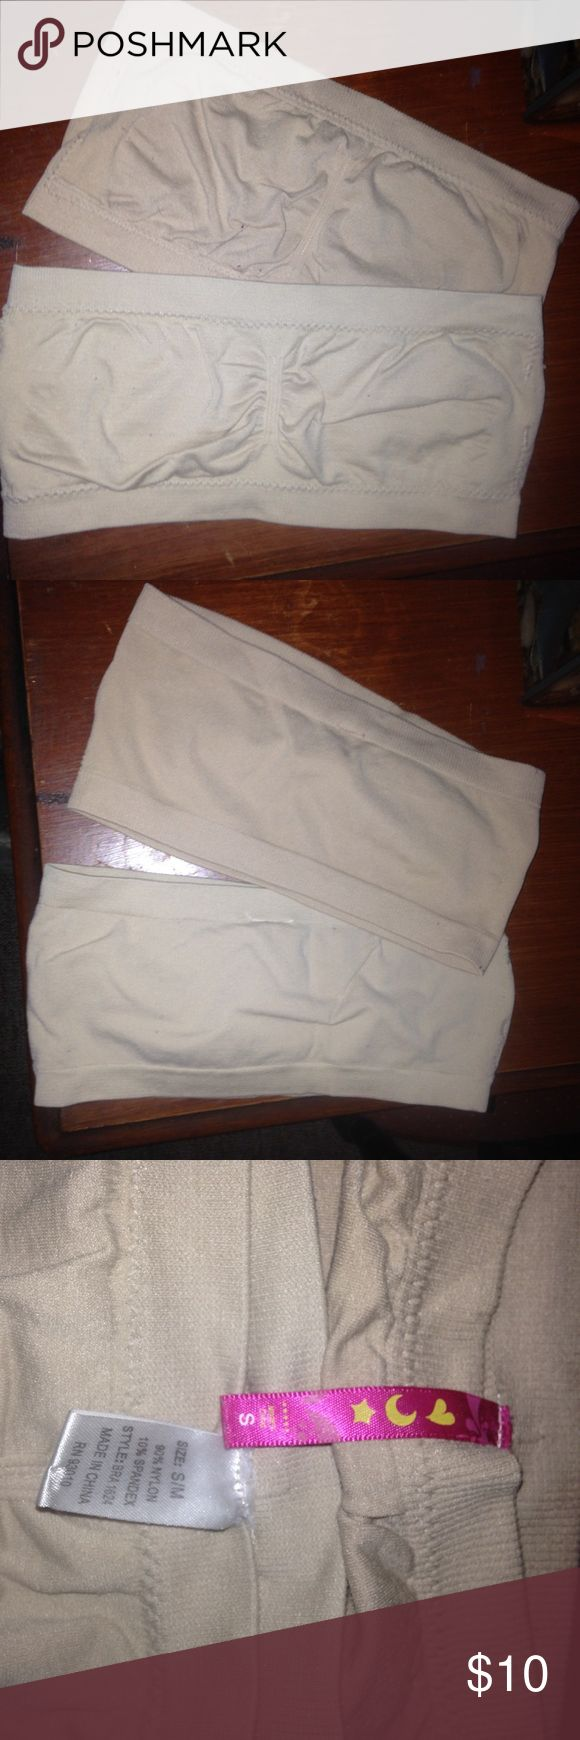 Nude Bandeaus Good condition. Both are size small. Can be bought together or separately. $5 each Intimates & Sleepwear Bandeaus